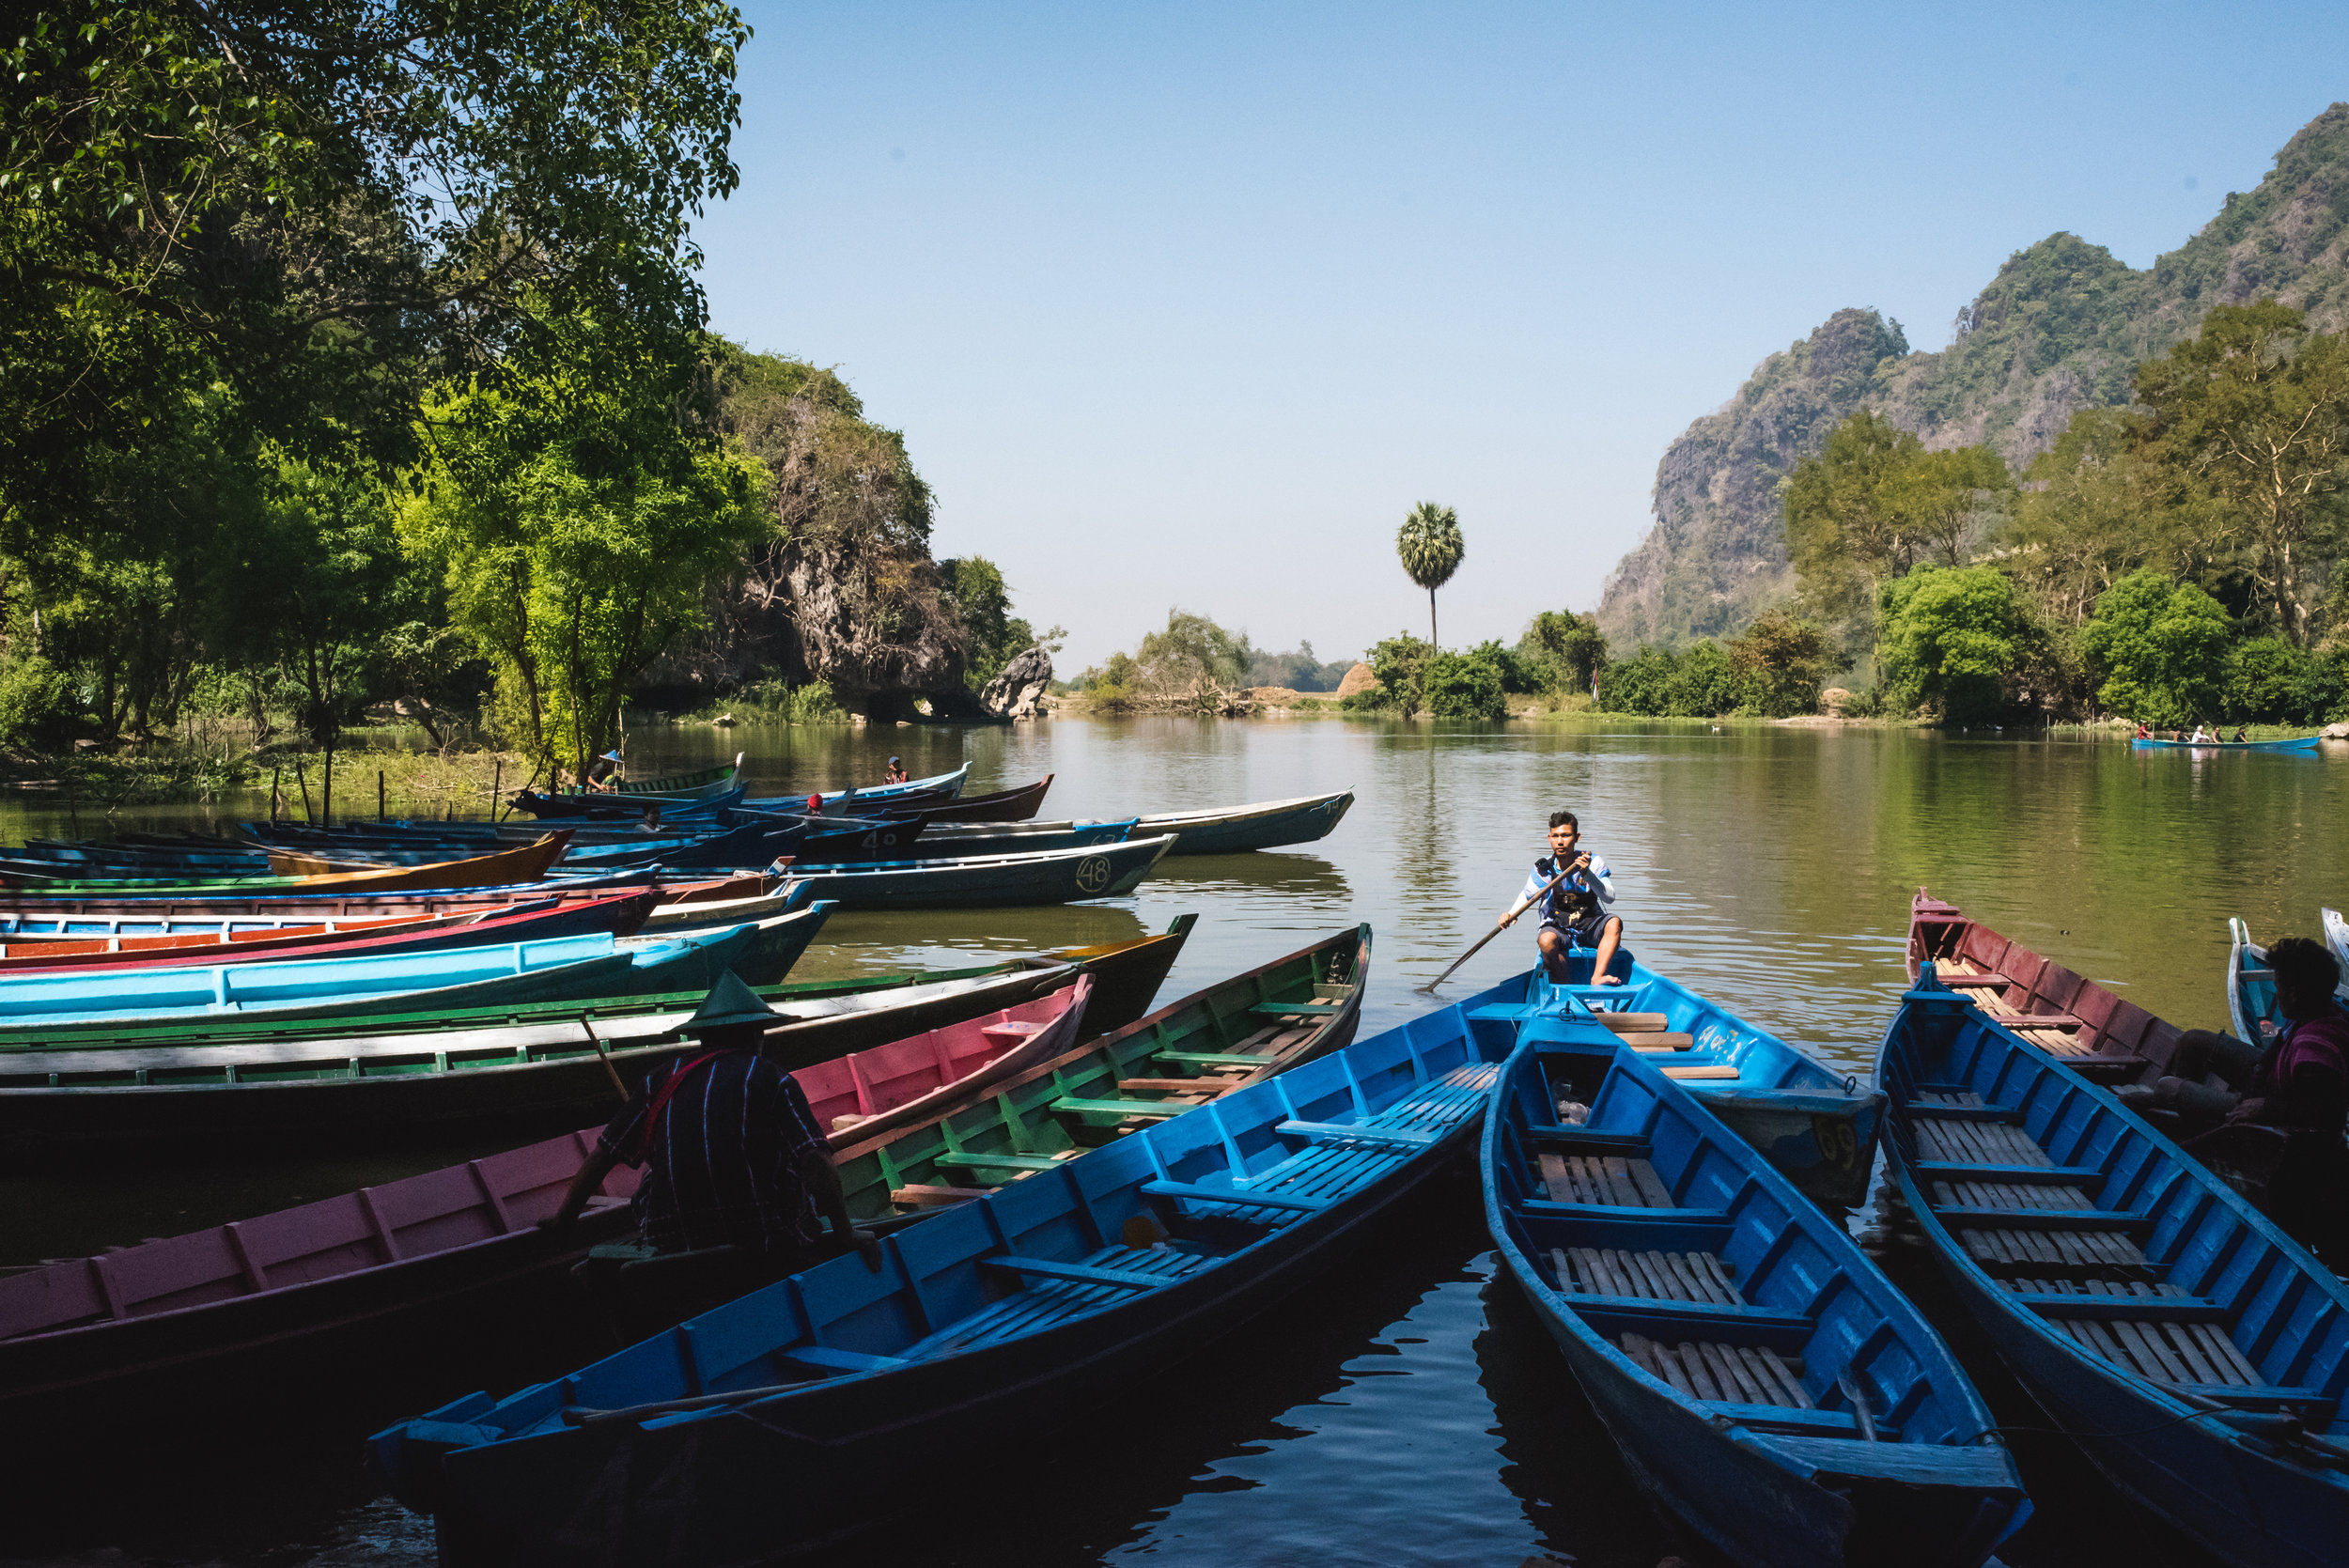 If you go to Sadan Cave, carry your shoes with you so that you can take one of these boats back to the parking lot without burning your feet. Literally—our friend stepped on a lit cigarette on the path.